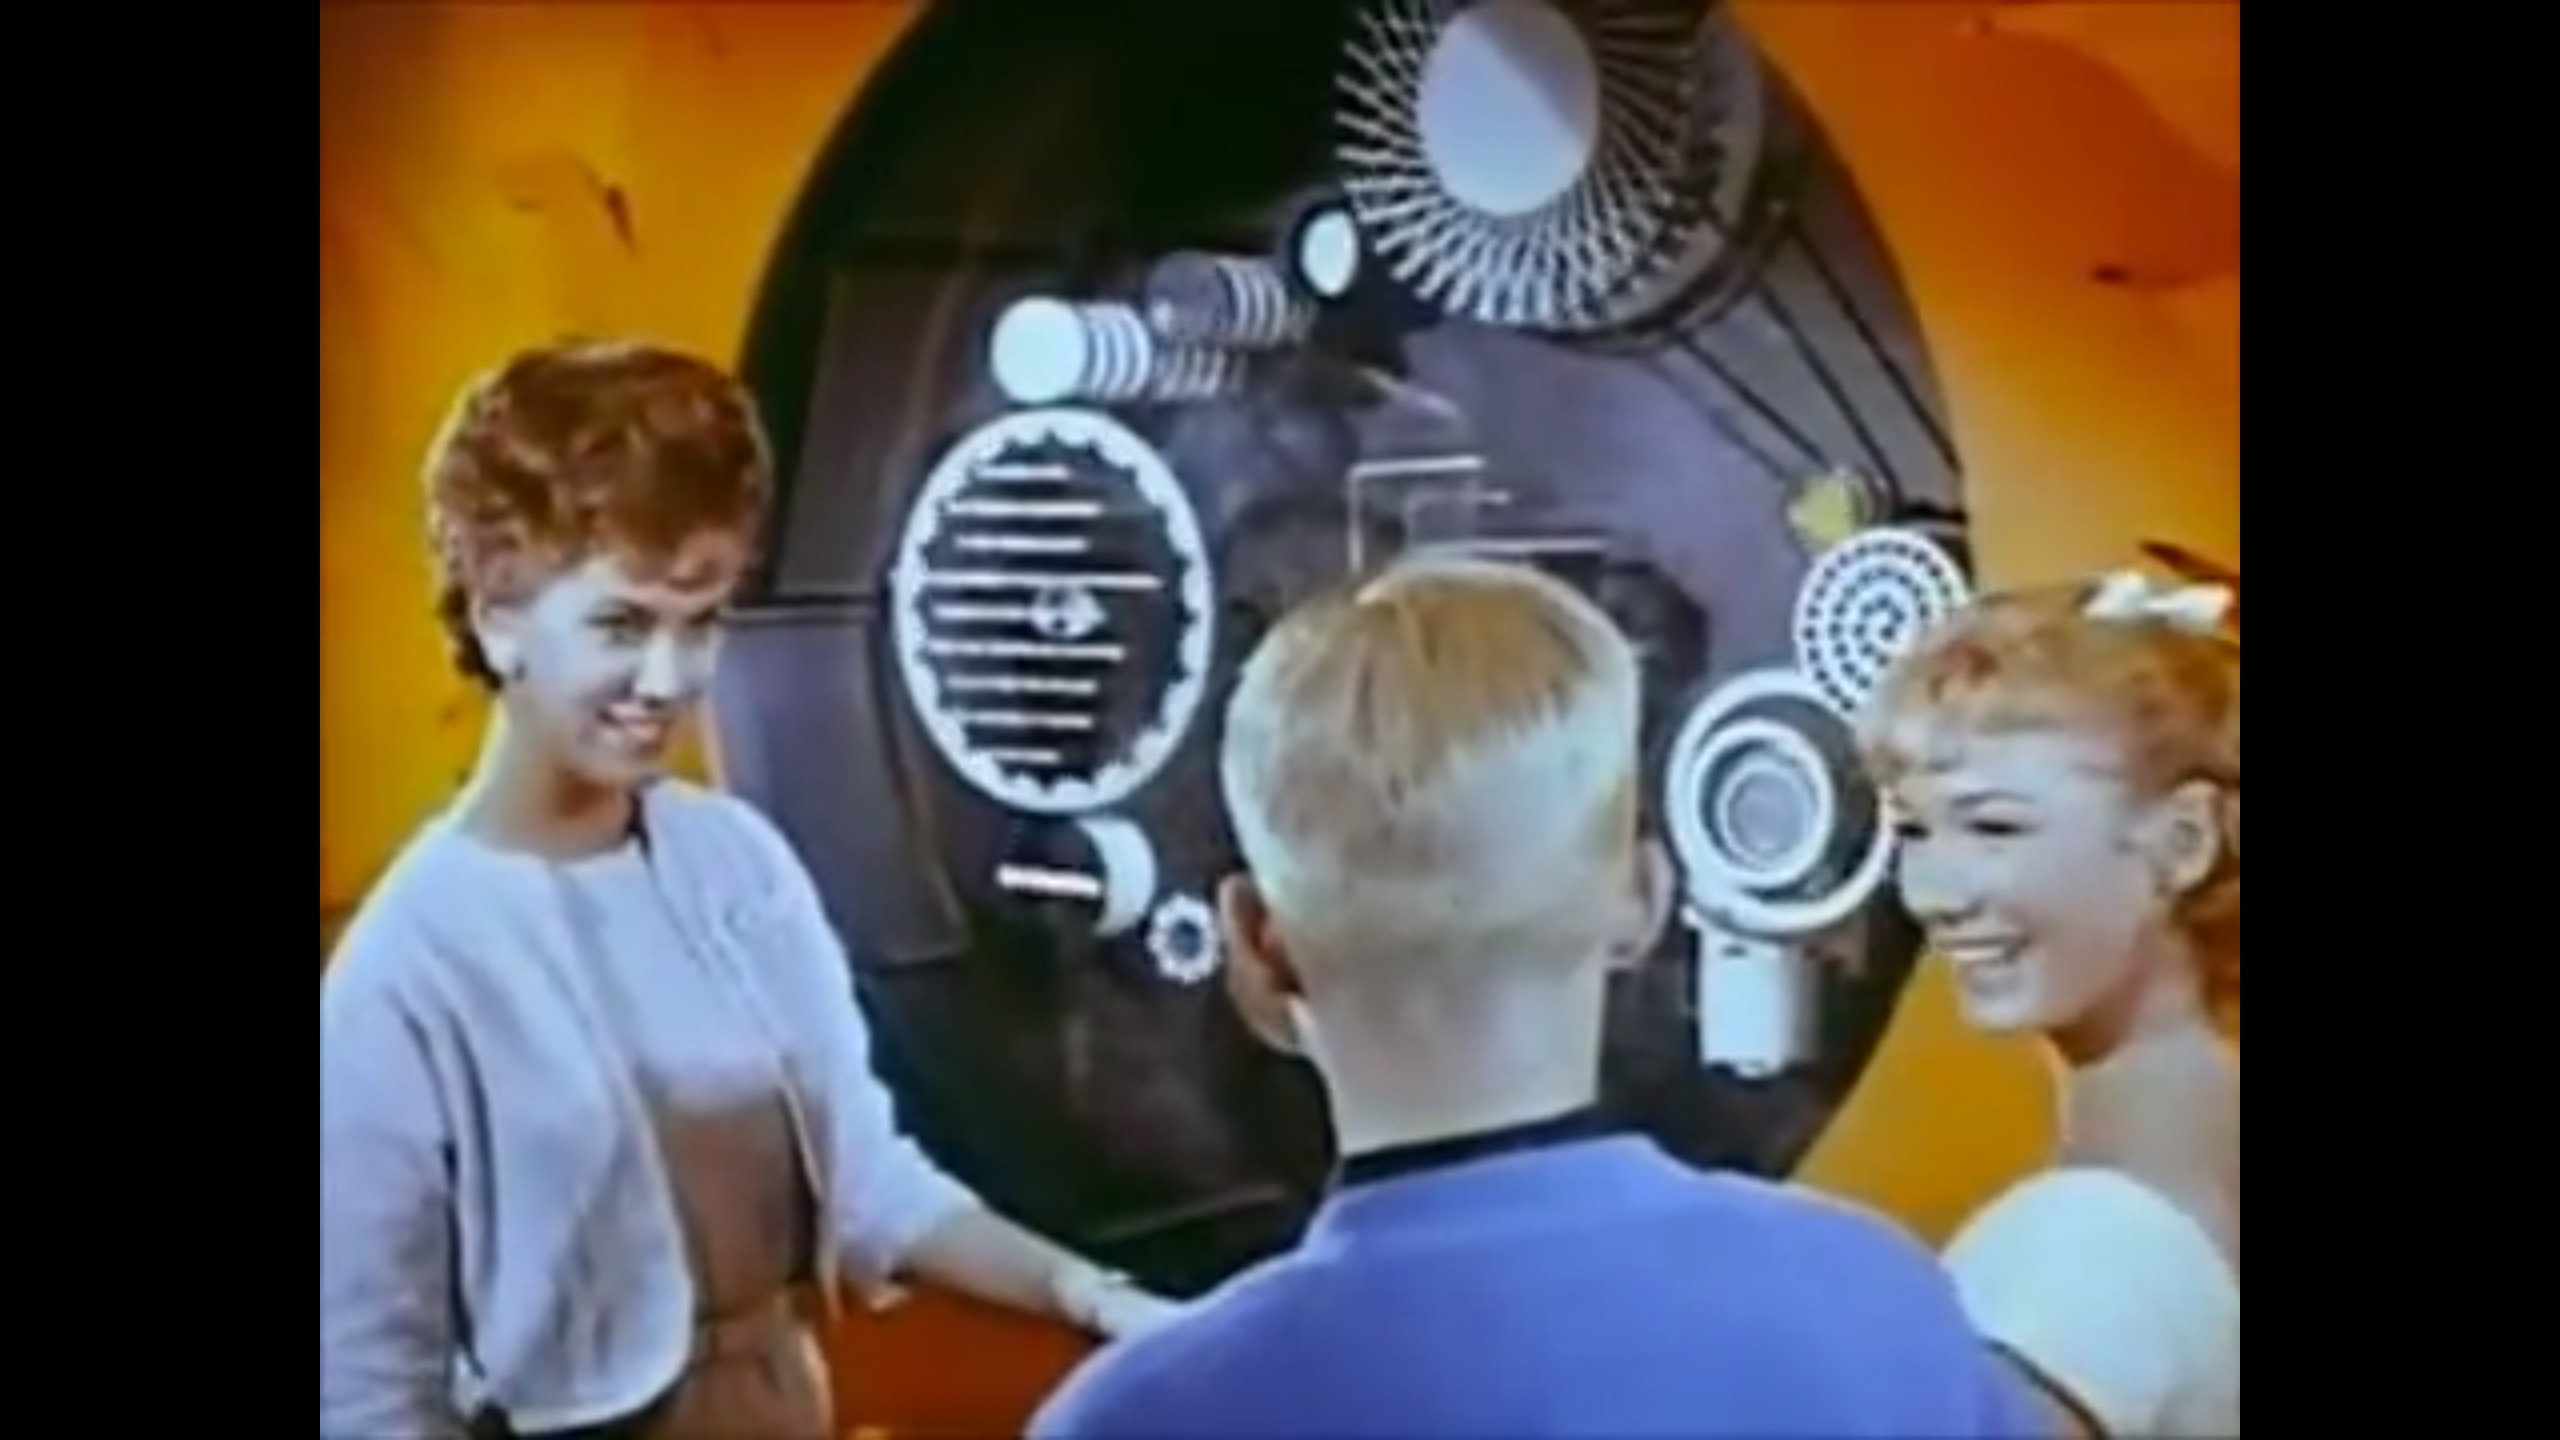 Go back to 1962 in this Bell Telephone film from the Seattle World's Fair